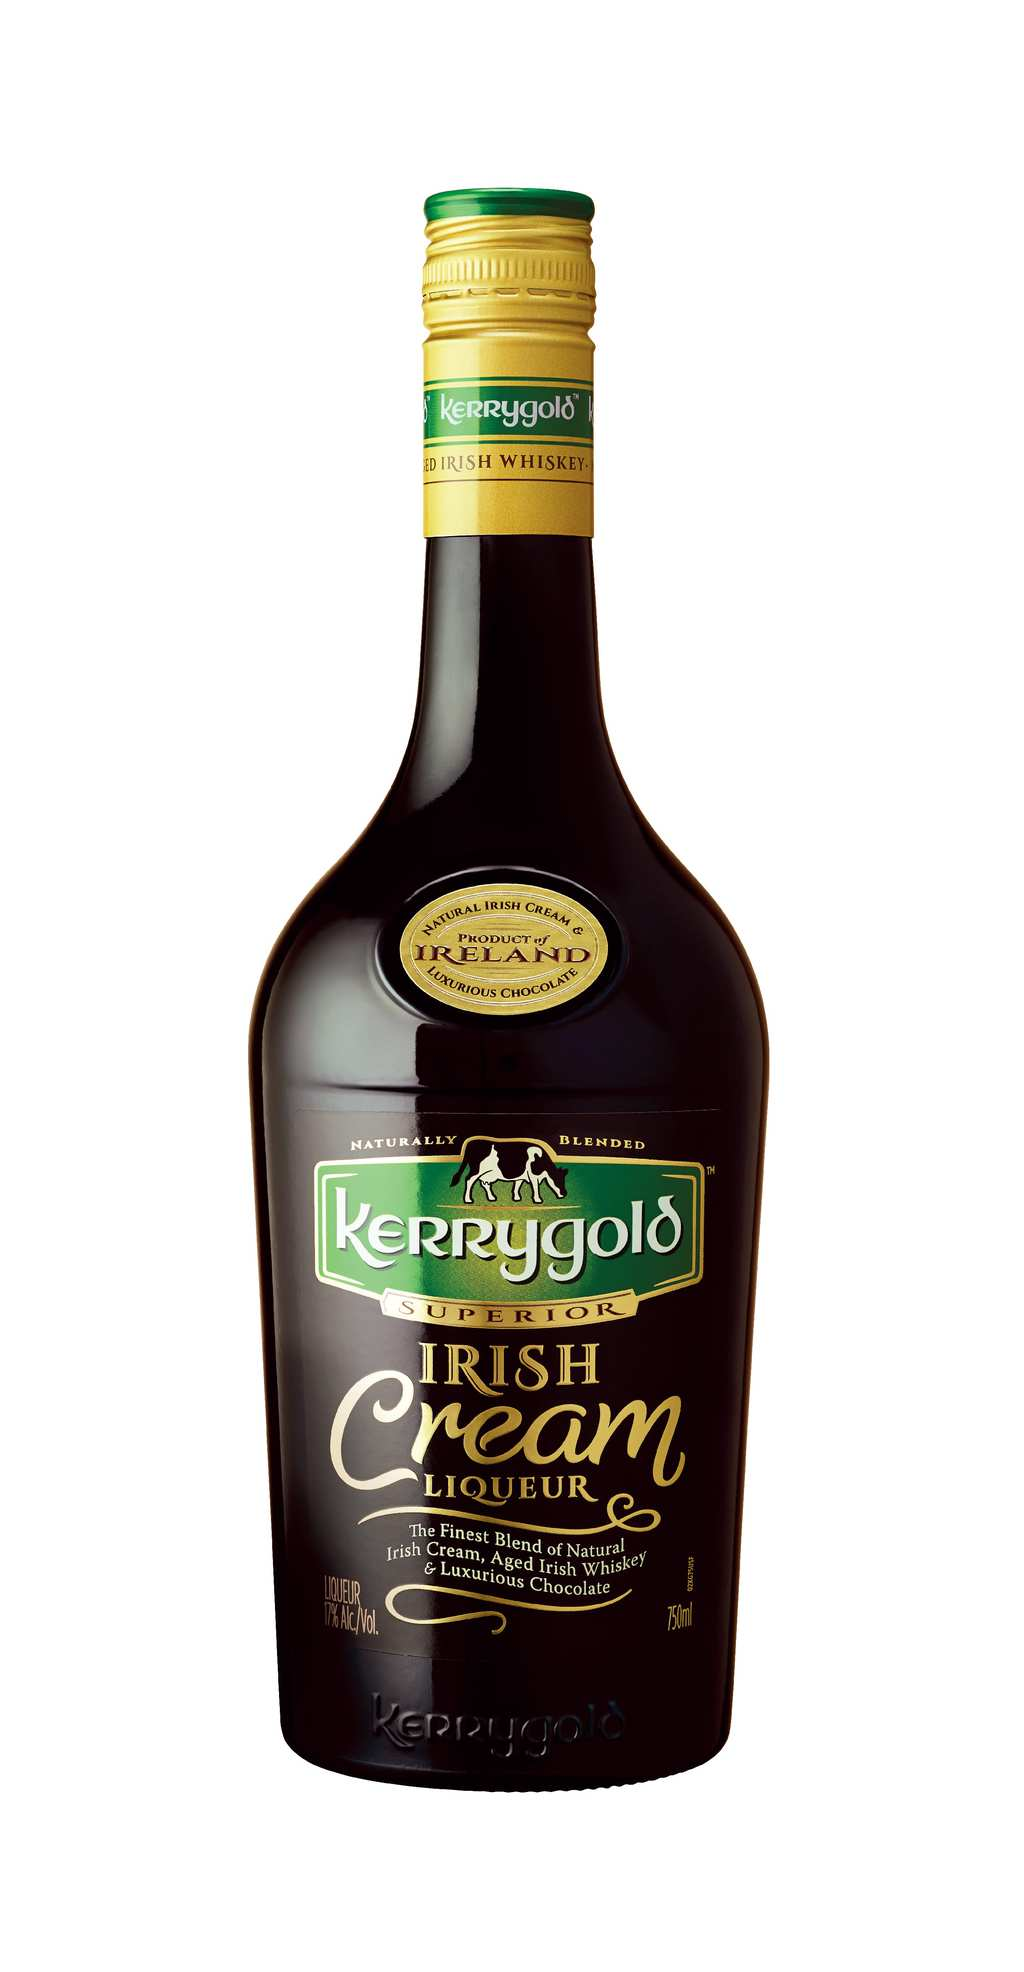 bottle of kerrygold irish cream liqueur